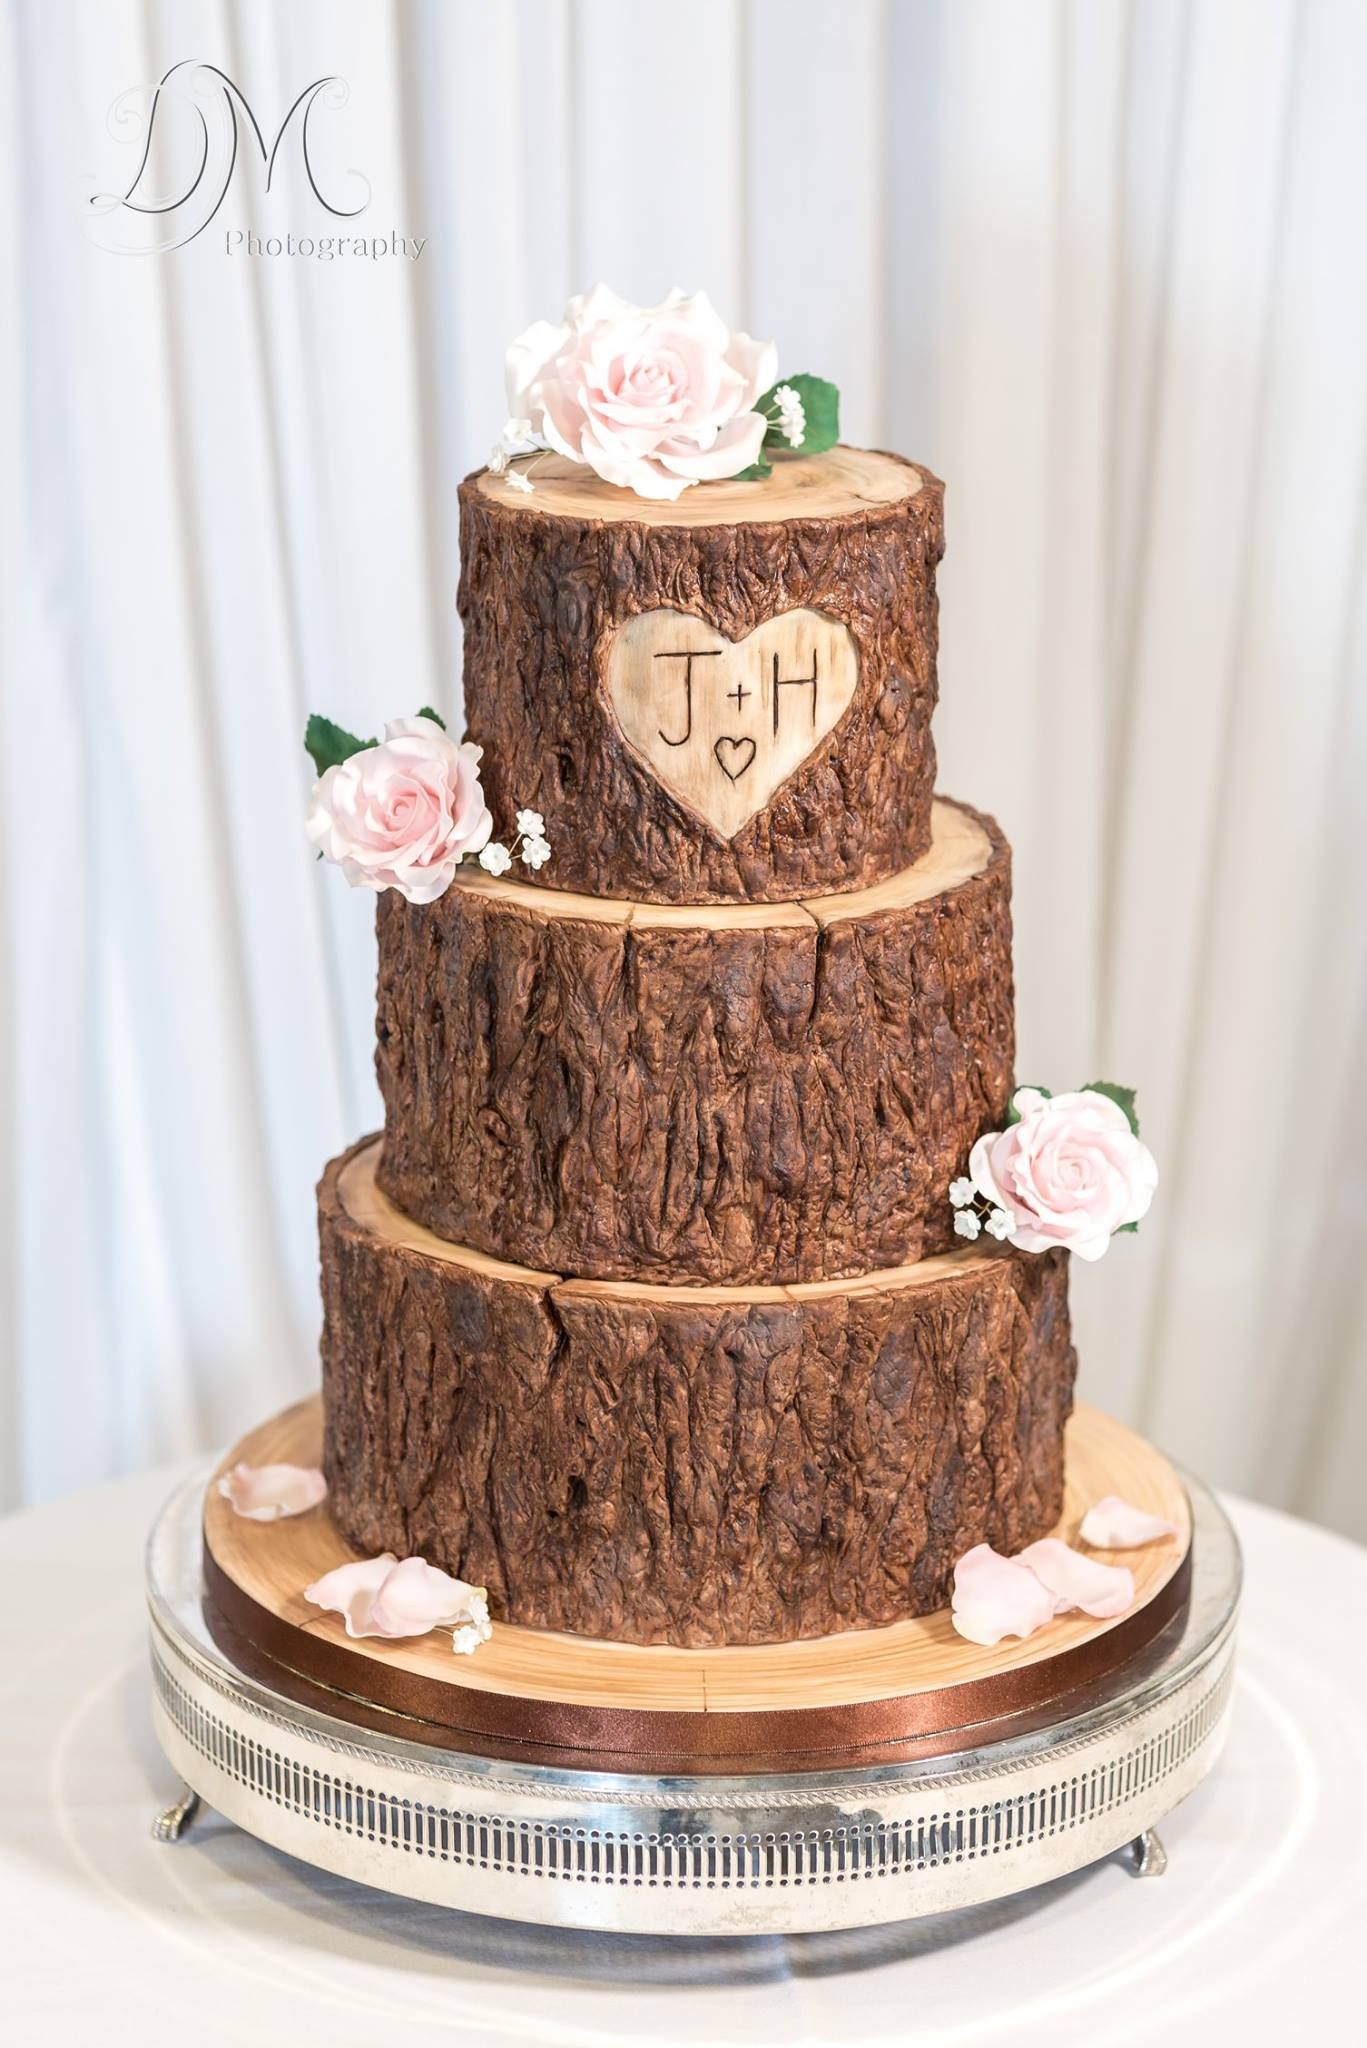 Wood / tree stump effect wedding cake | Cake Ideas in 2018 ...